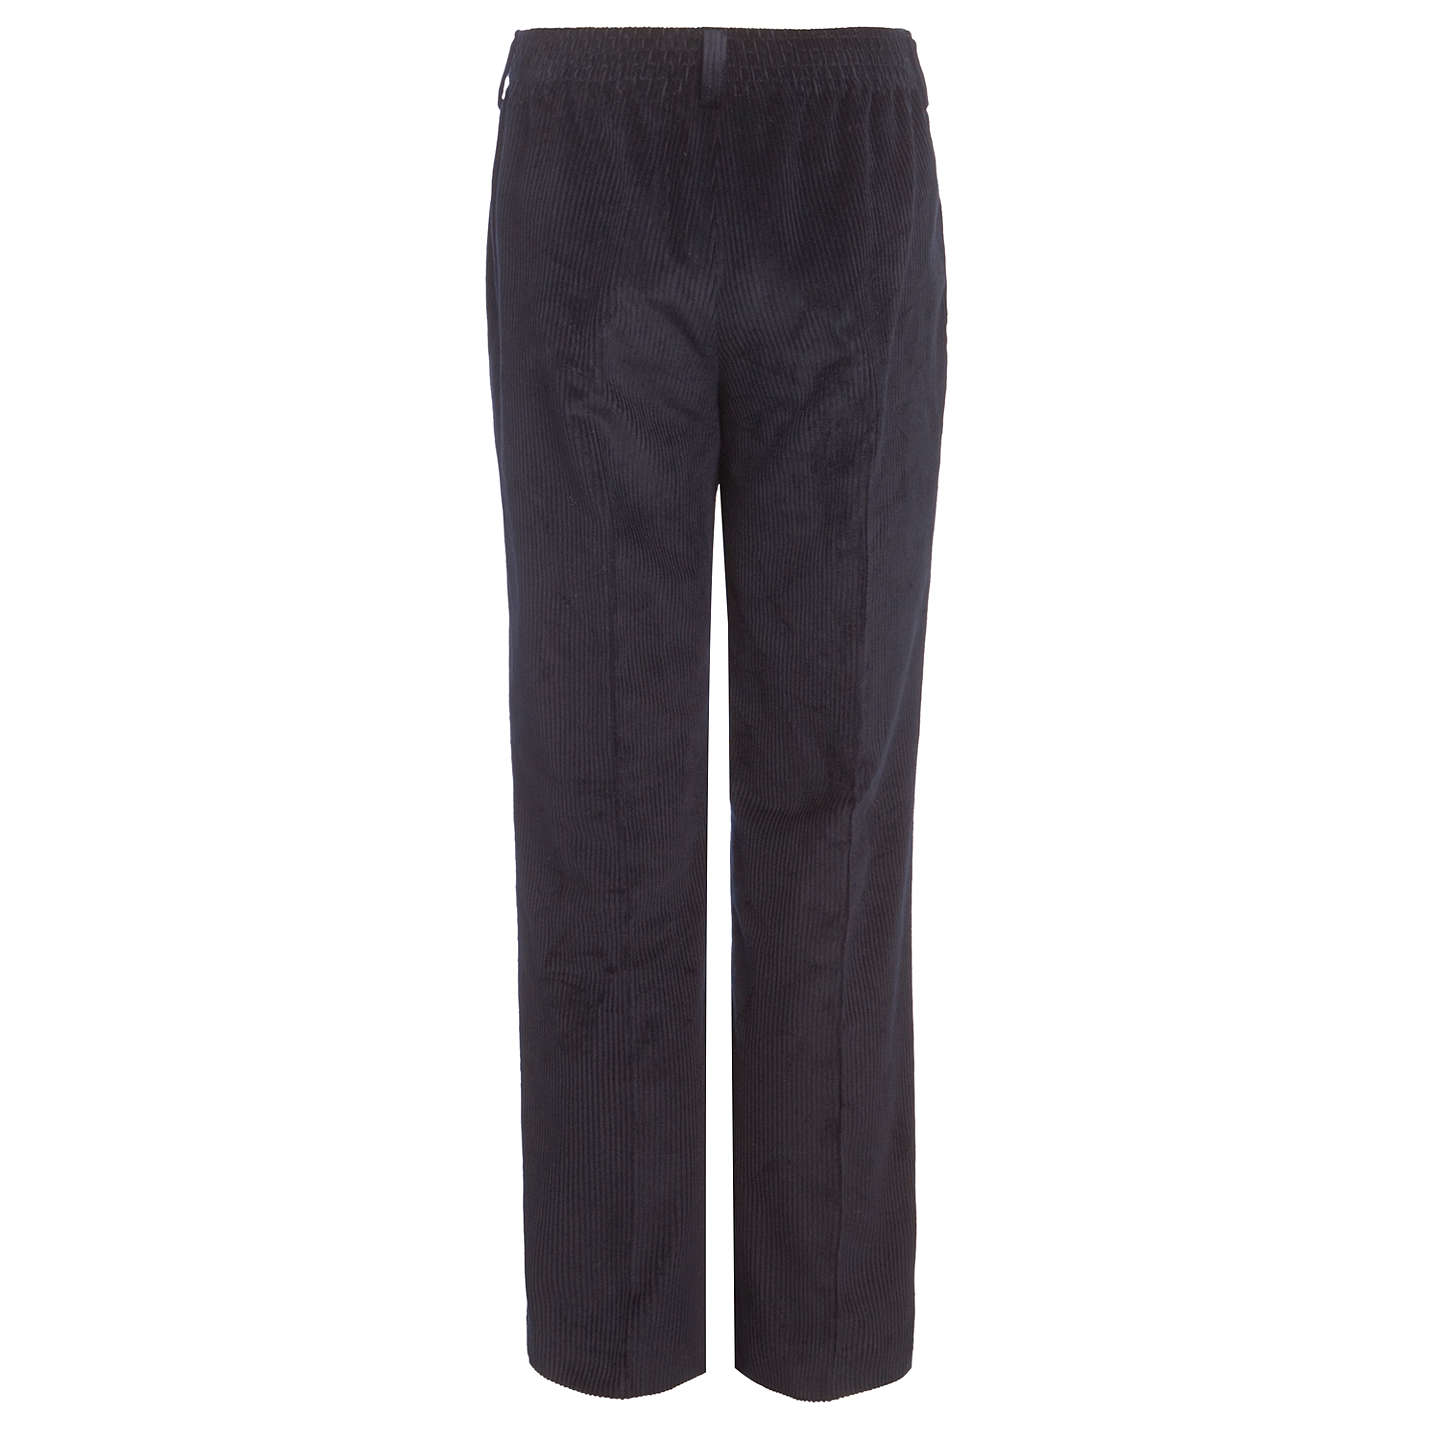 "BuyJohn Lewis Cord Boys' Trousers, Navy, W19"" Online at johnlewis.com"